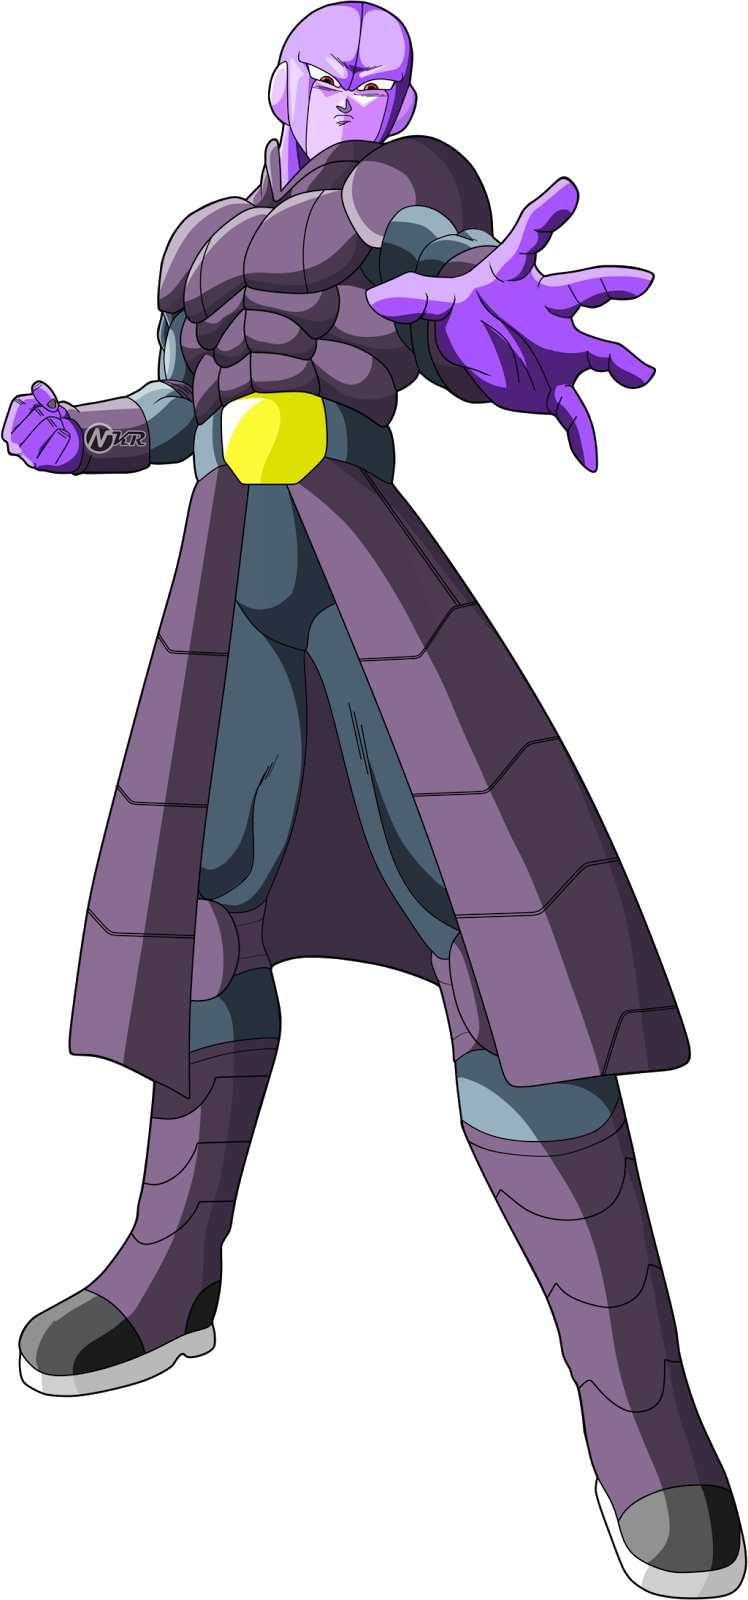 Sora 39 s pictures of various cool stuff all primary dragon ball villains - Dragon ball z image ...